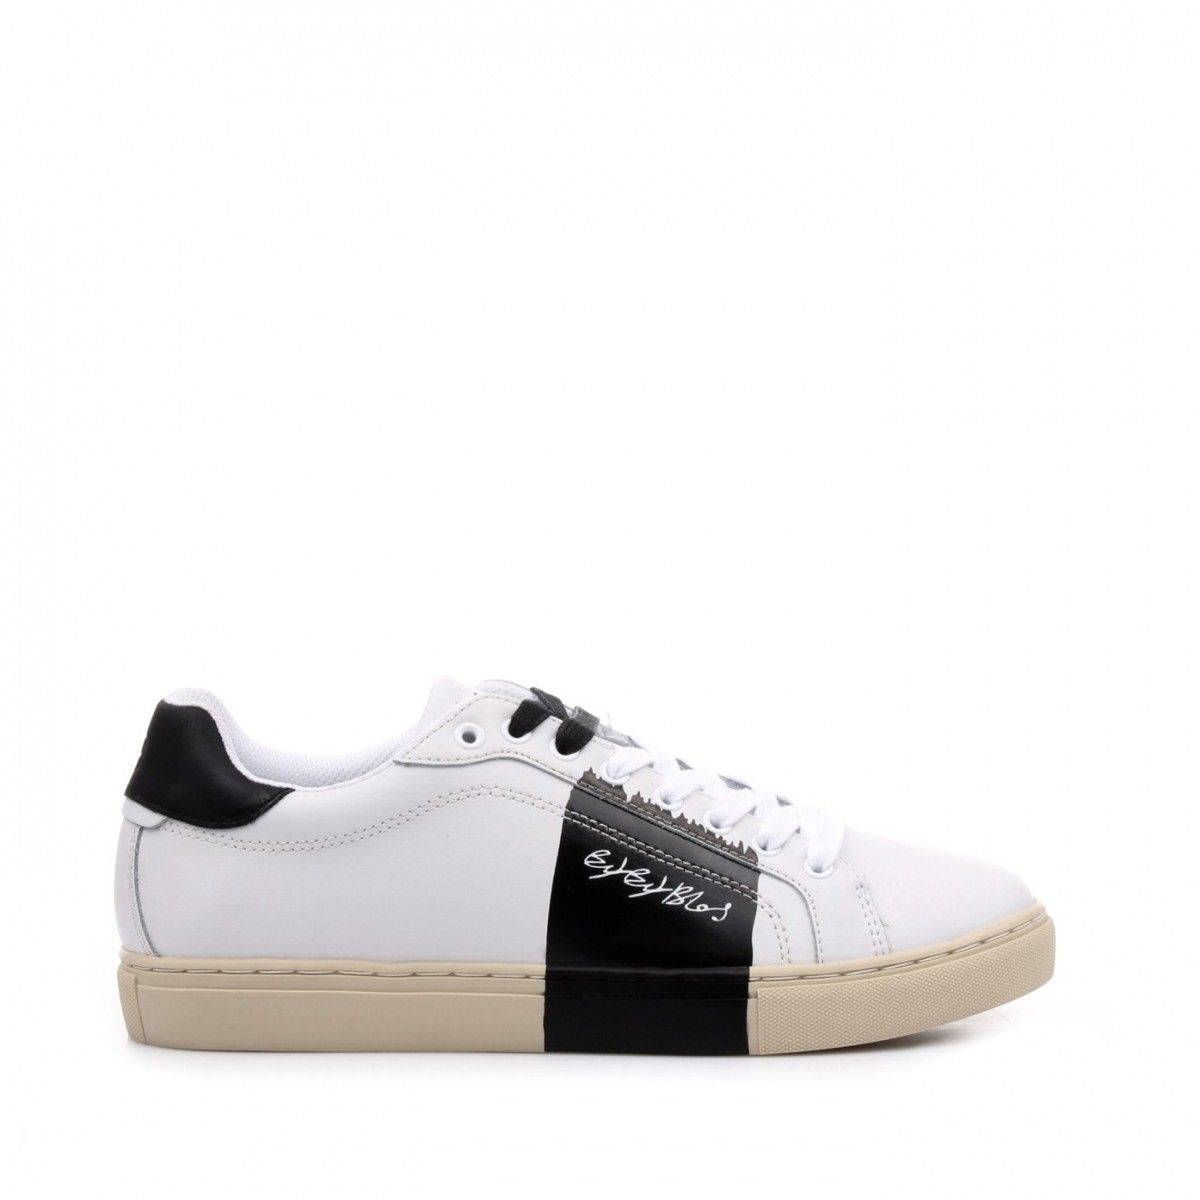 Byblos by byblos - Strip w601 white/black 2UA0002